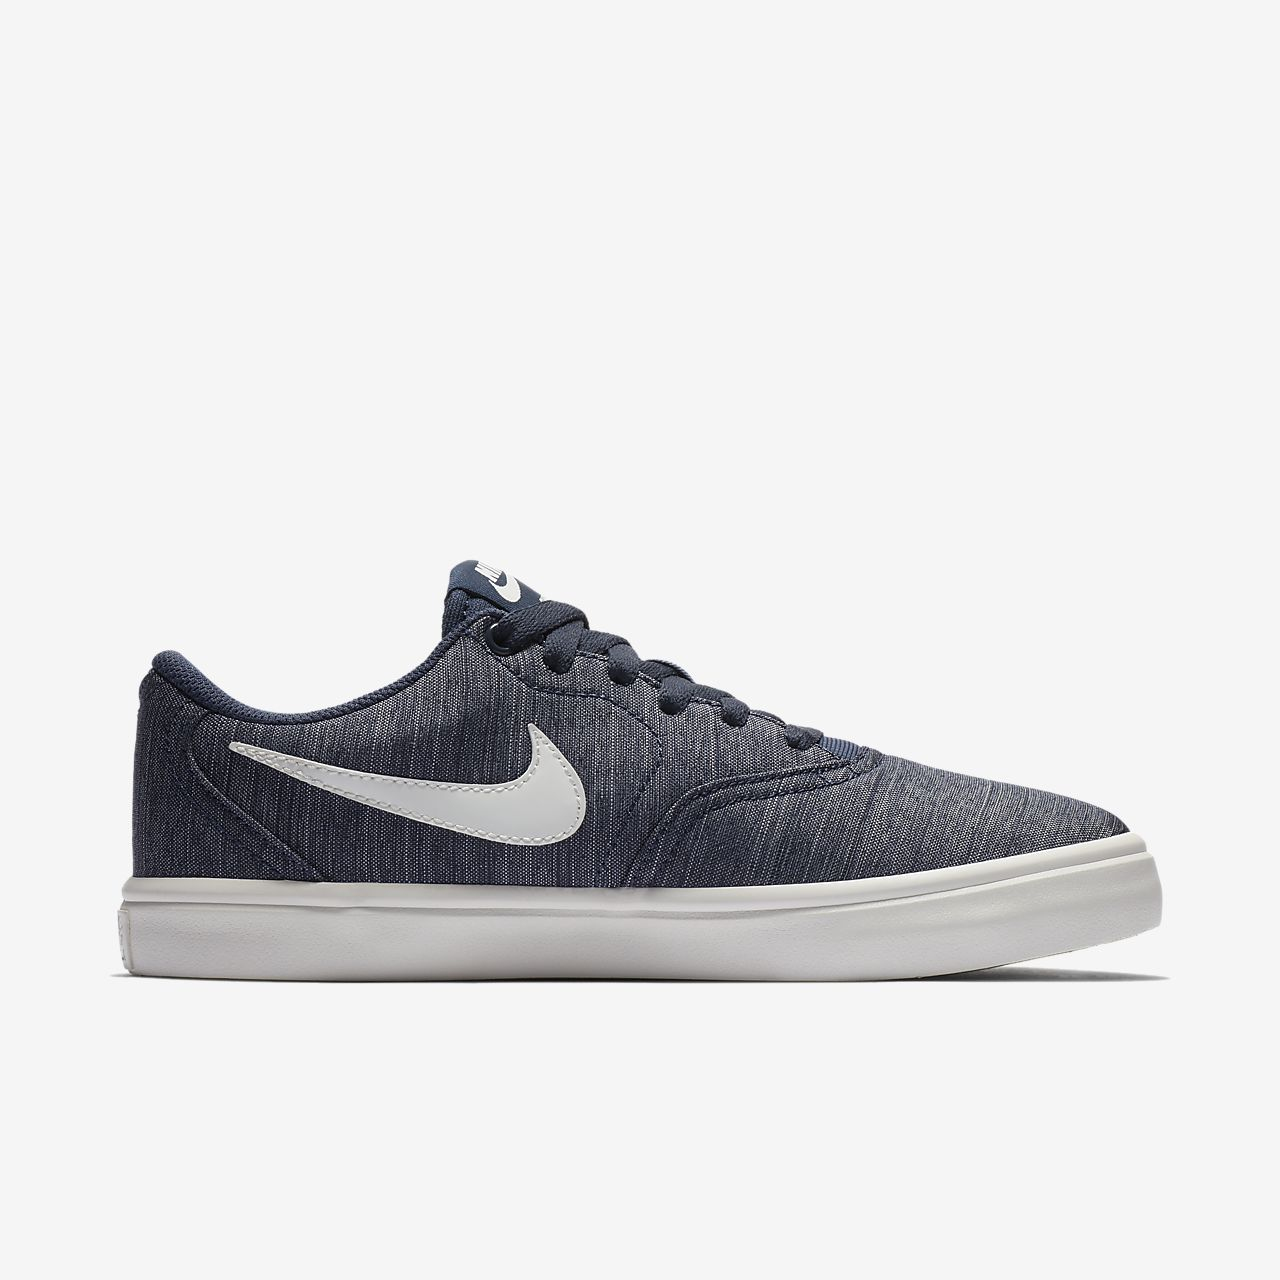 Acquista nike janoski sb donna 2017 OFF69% sconti